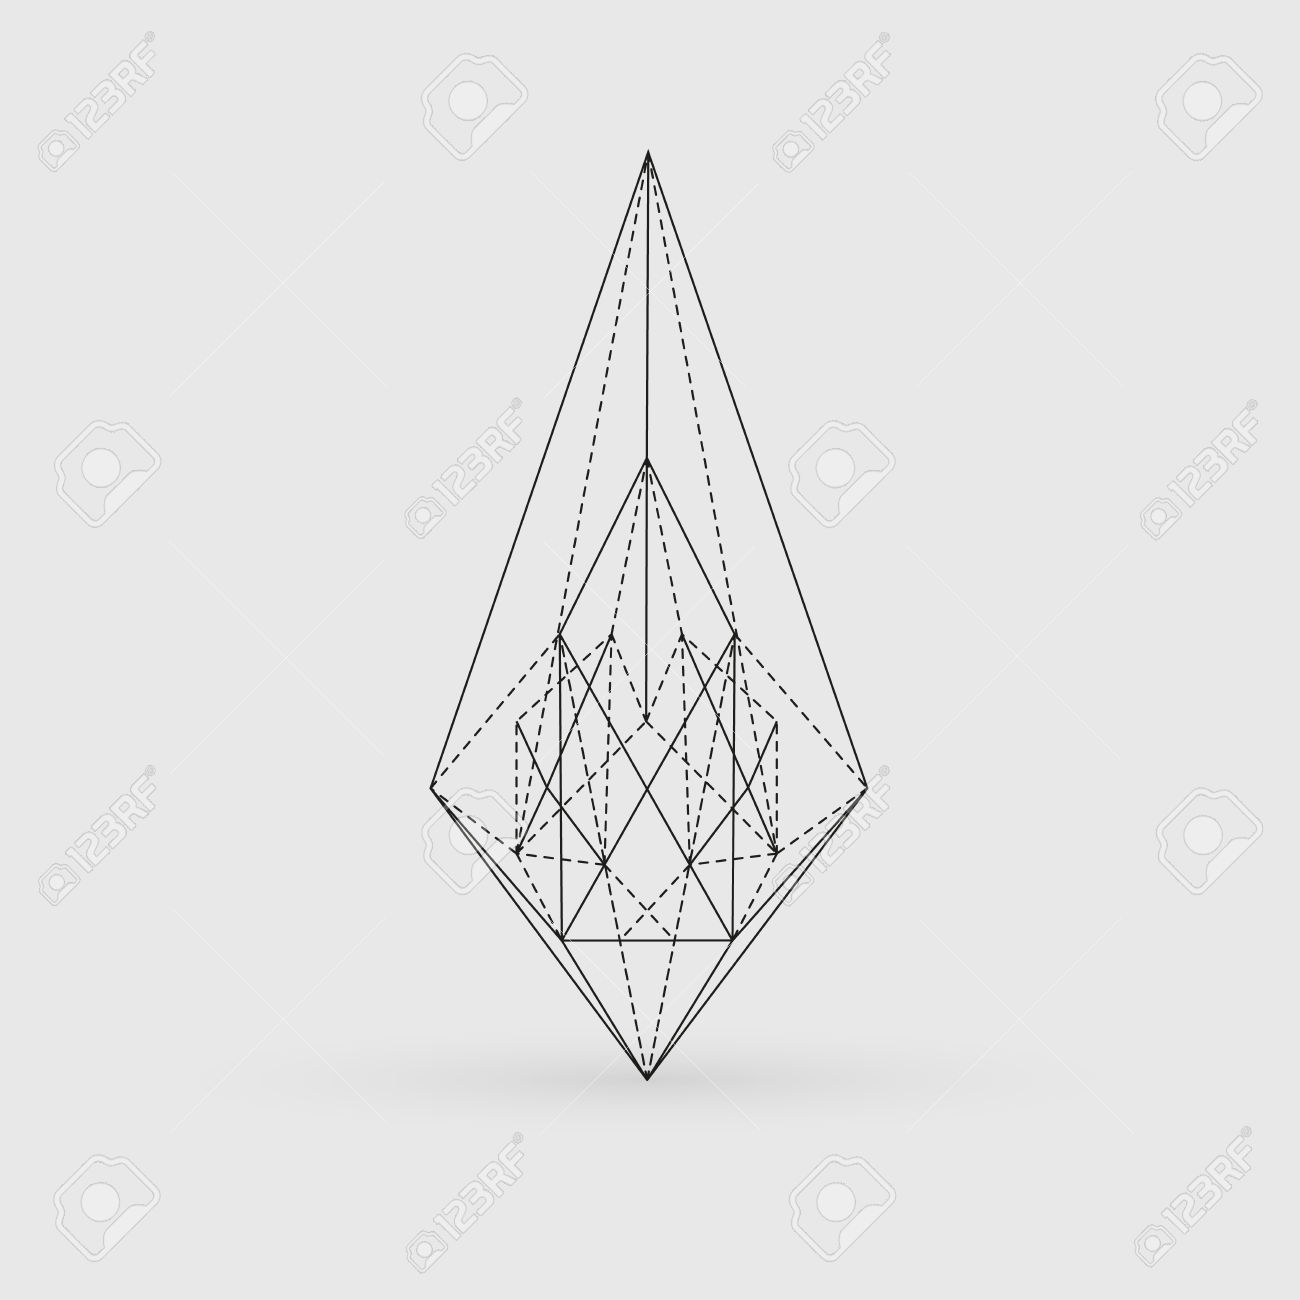 Geometric Line Design Patterns : Geometry line art clipground